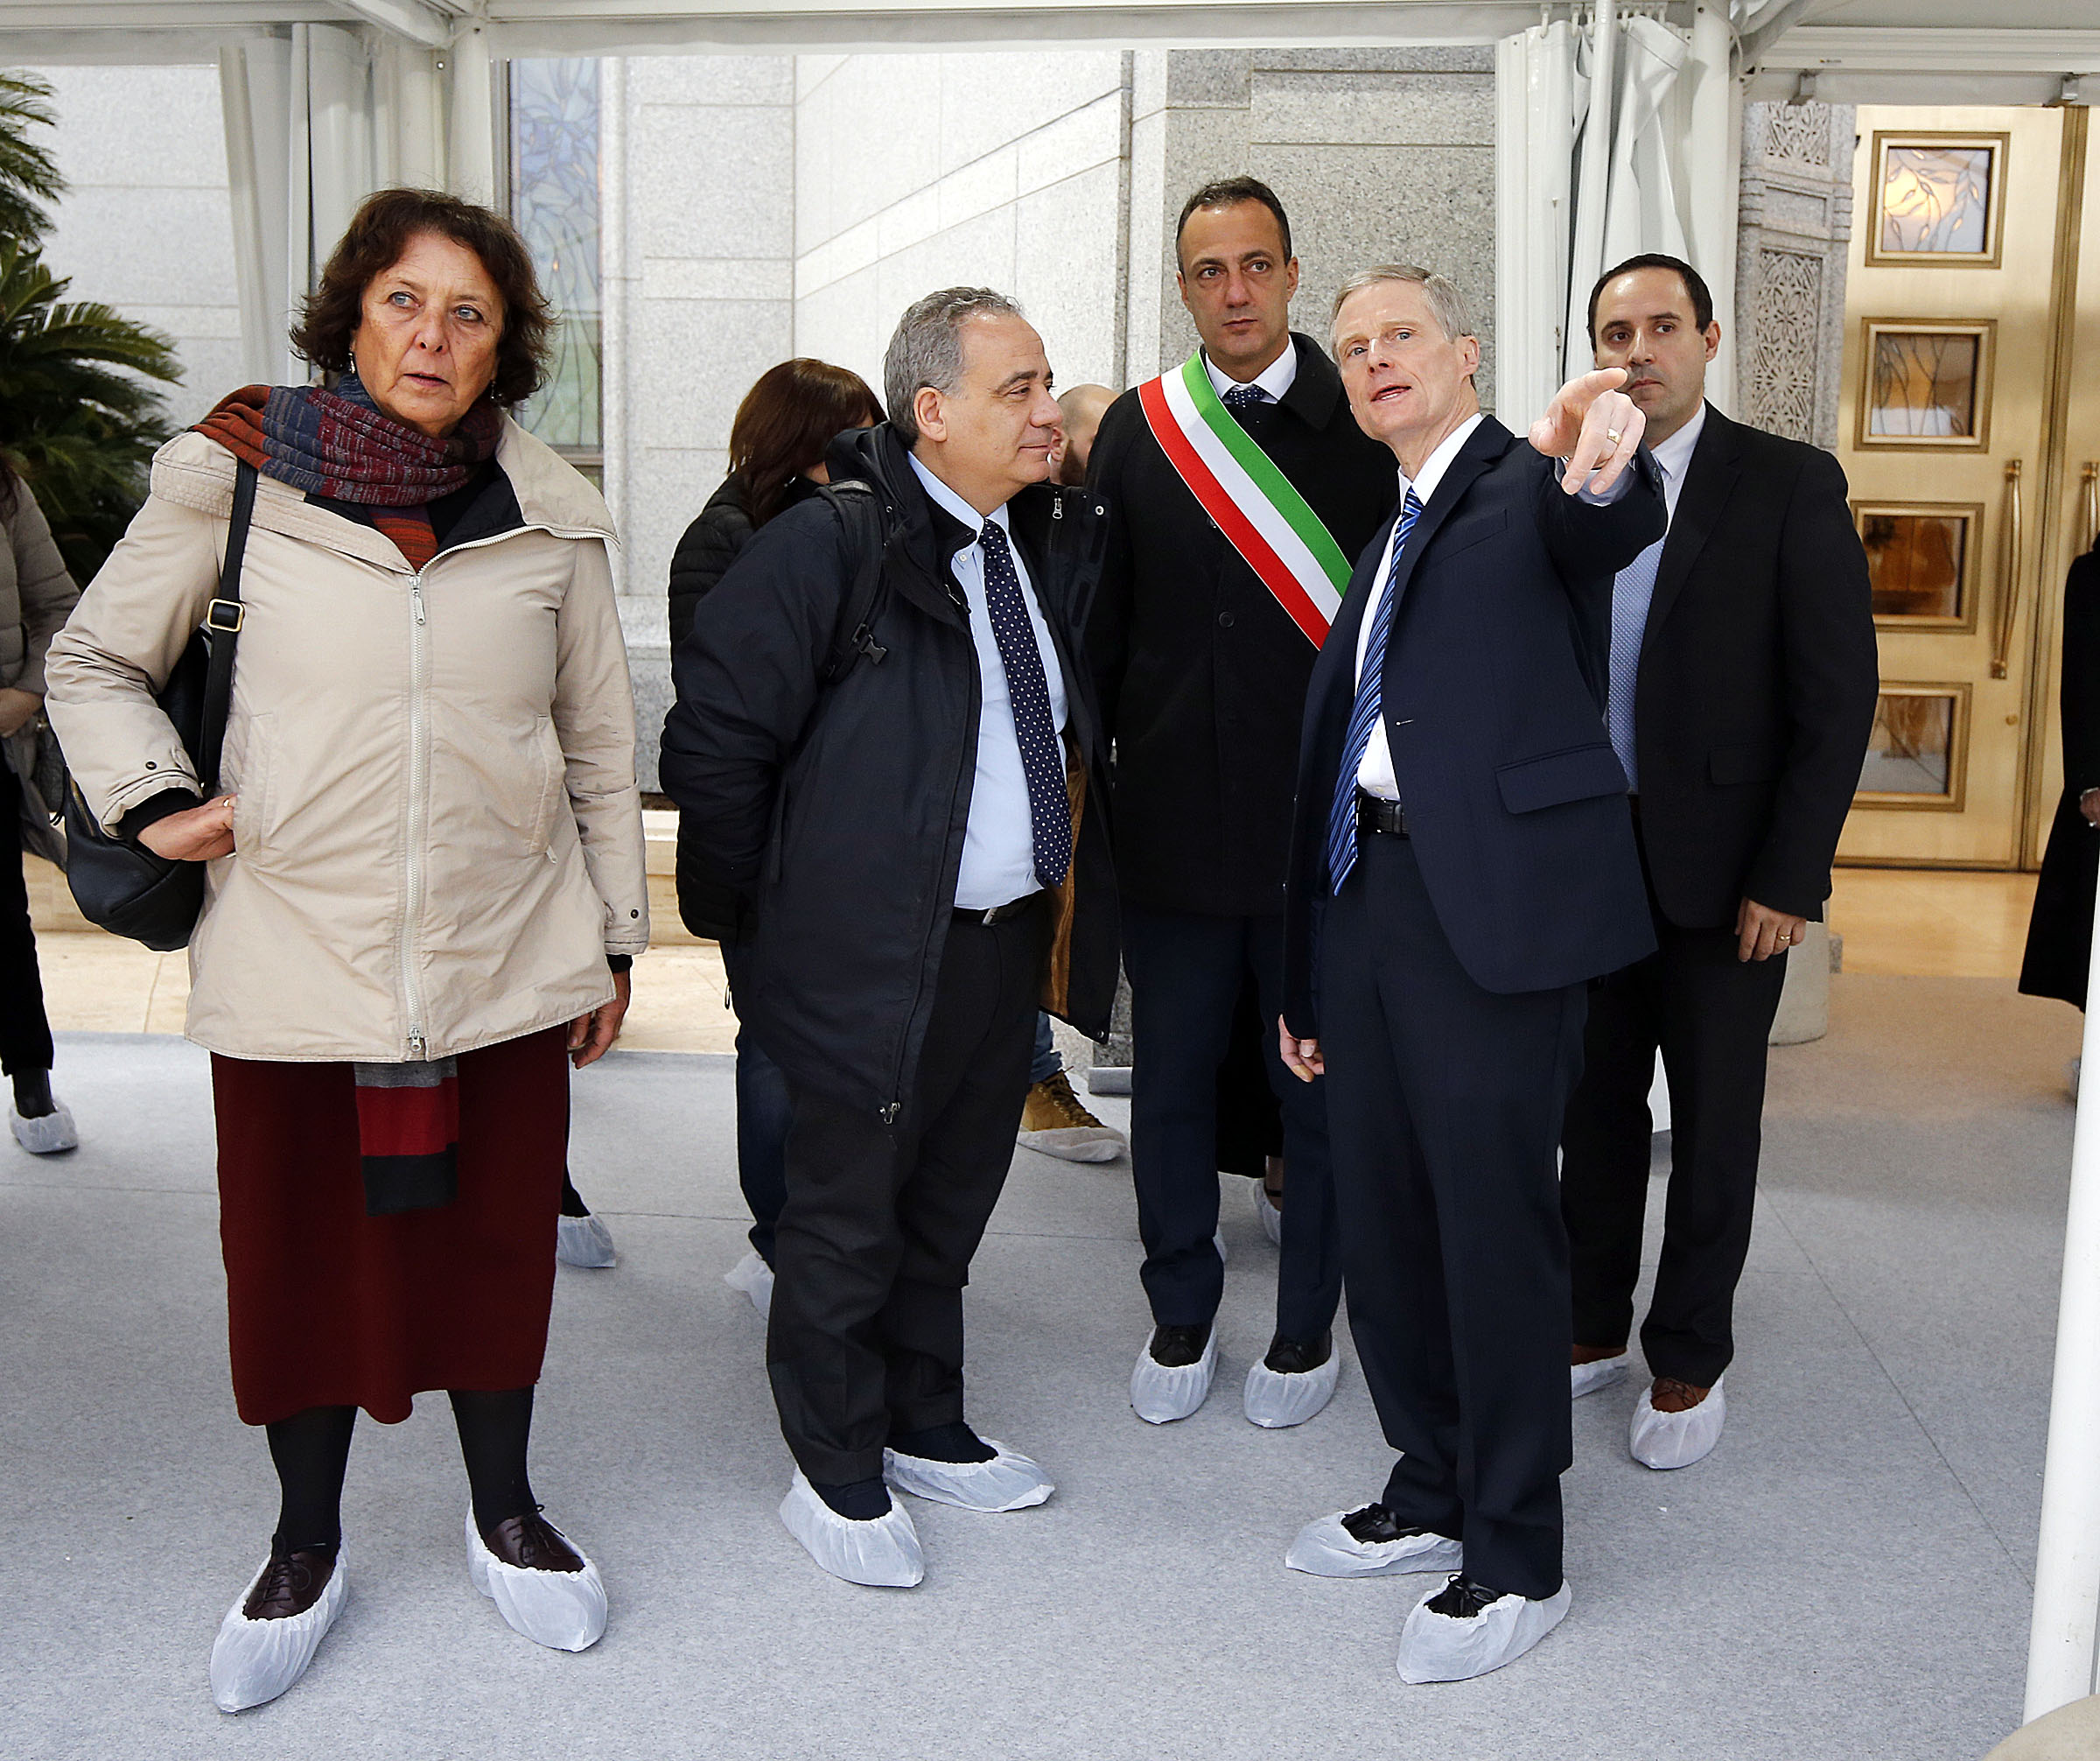 Elder David A. Bednar of the Quorum of the Twelve Apostles of The Church of Jesus Christ of Latter-day Saints talks about features of the Rome Italy Temple grounds on Monday, Jan. 14, 2019. Third from right is President Marcello De Vito of the Rome City Council. Fourth from right is President Giovanni Caudo, president of the Third Municipality of Rome.